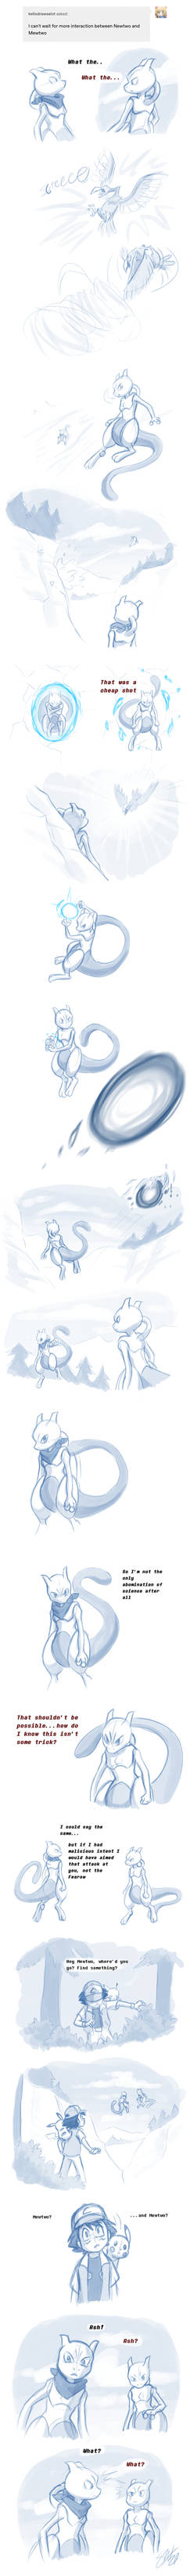 The Other Mewtwo - 2